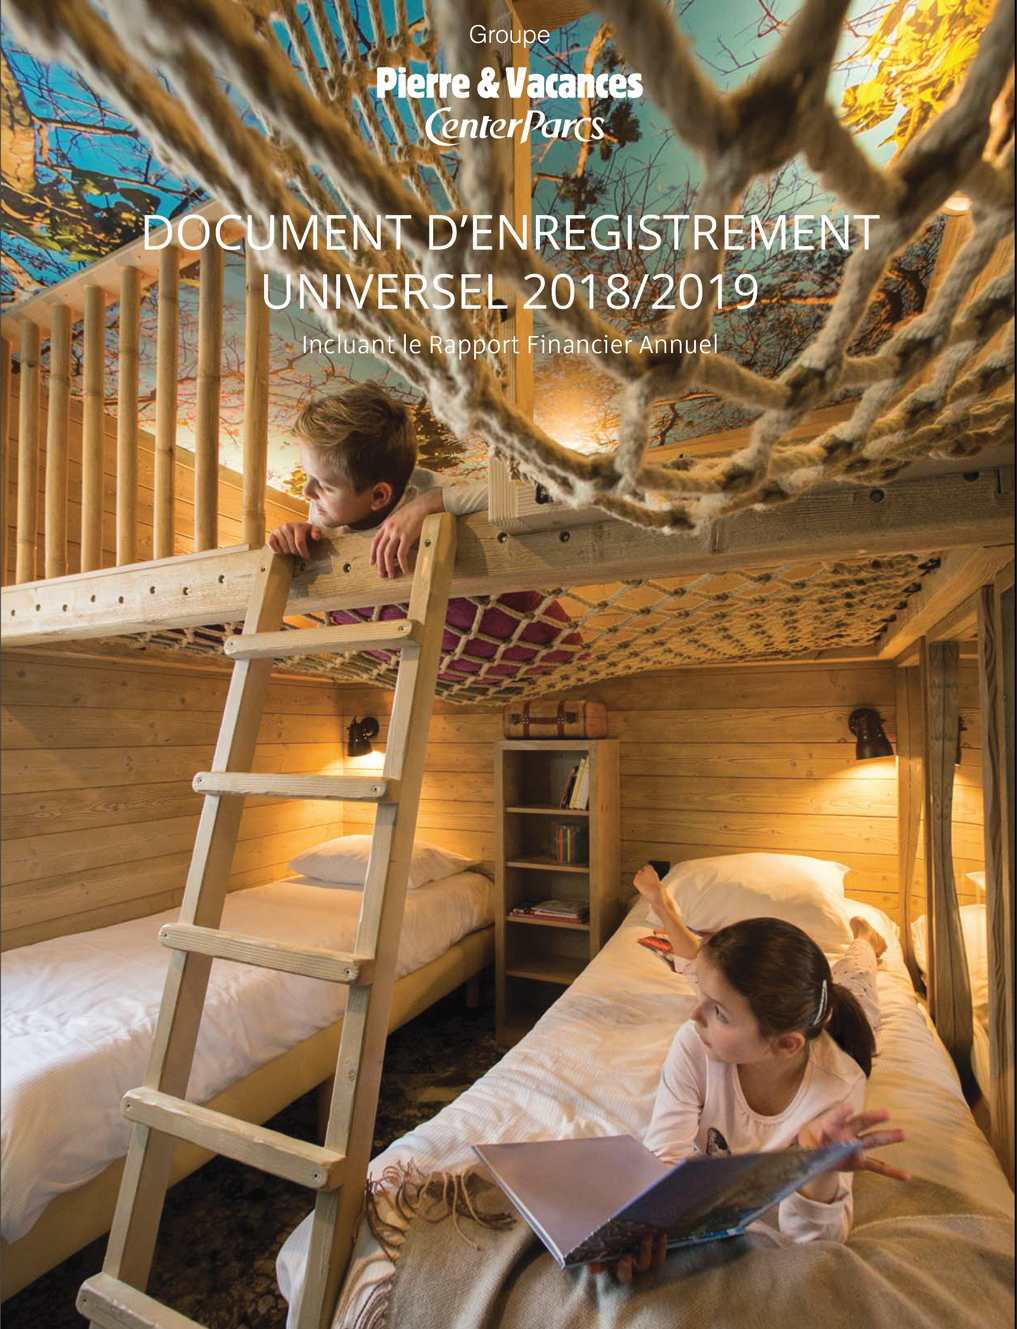 Document d'enregistrement universel 2018-2019